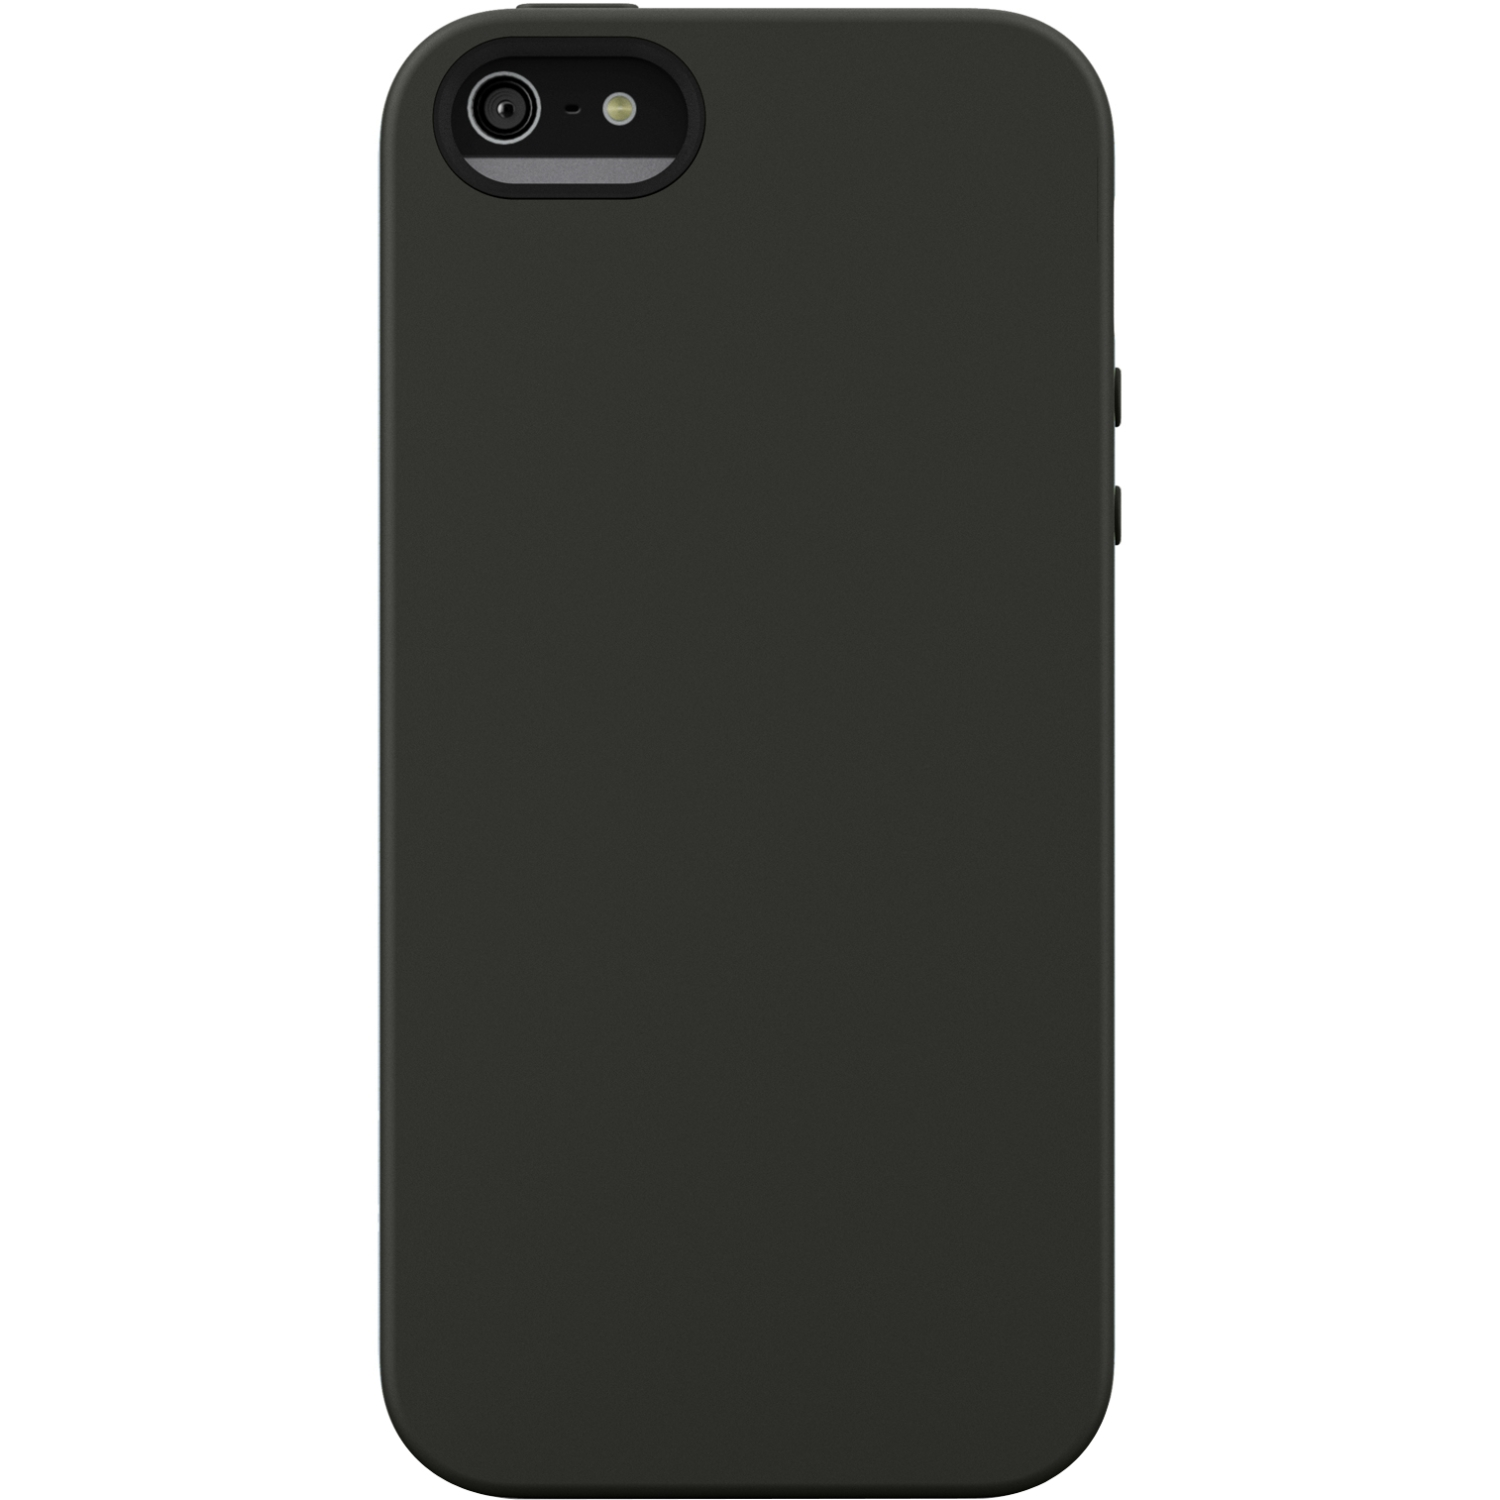 Belkin Grip Candy for iPhone 5SE/5s, Black